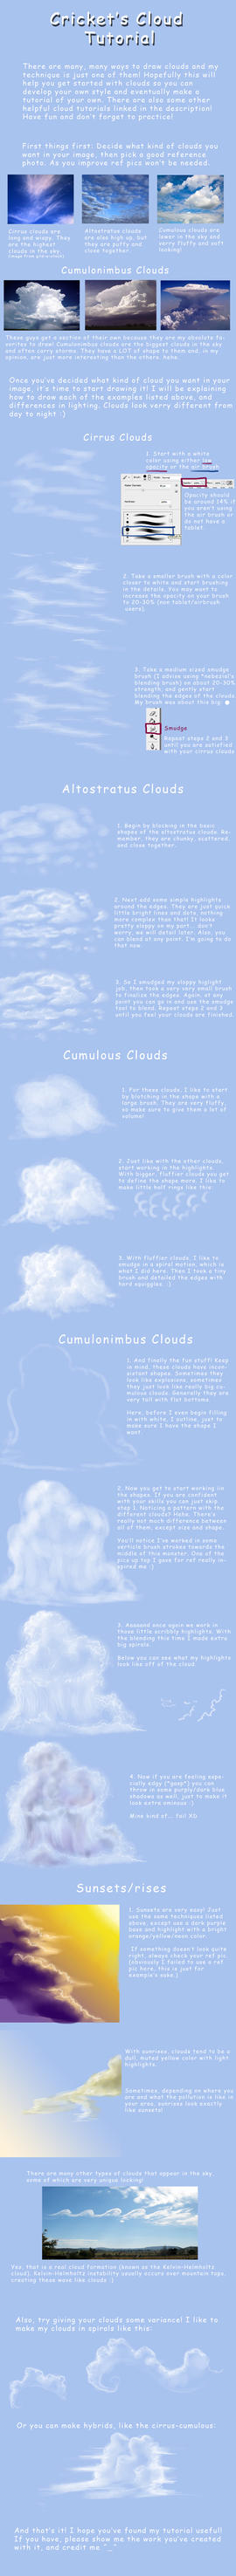 Cloud Tutorial by Crickatoo